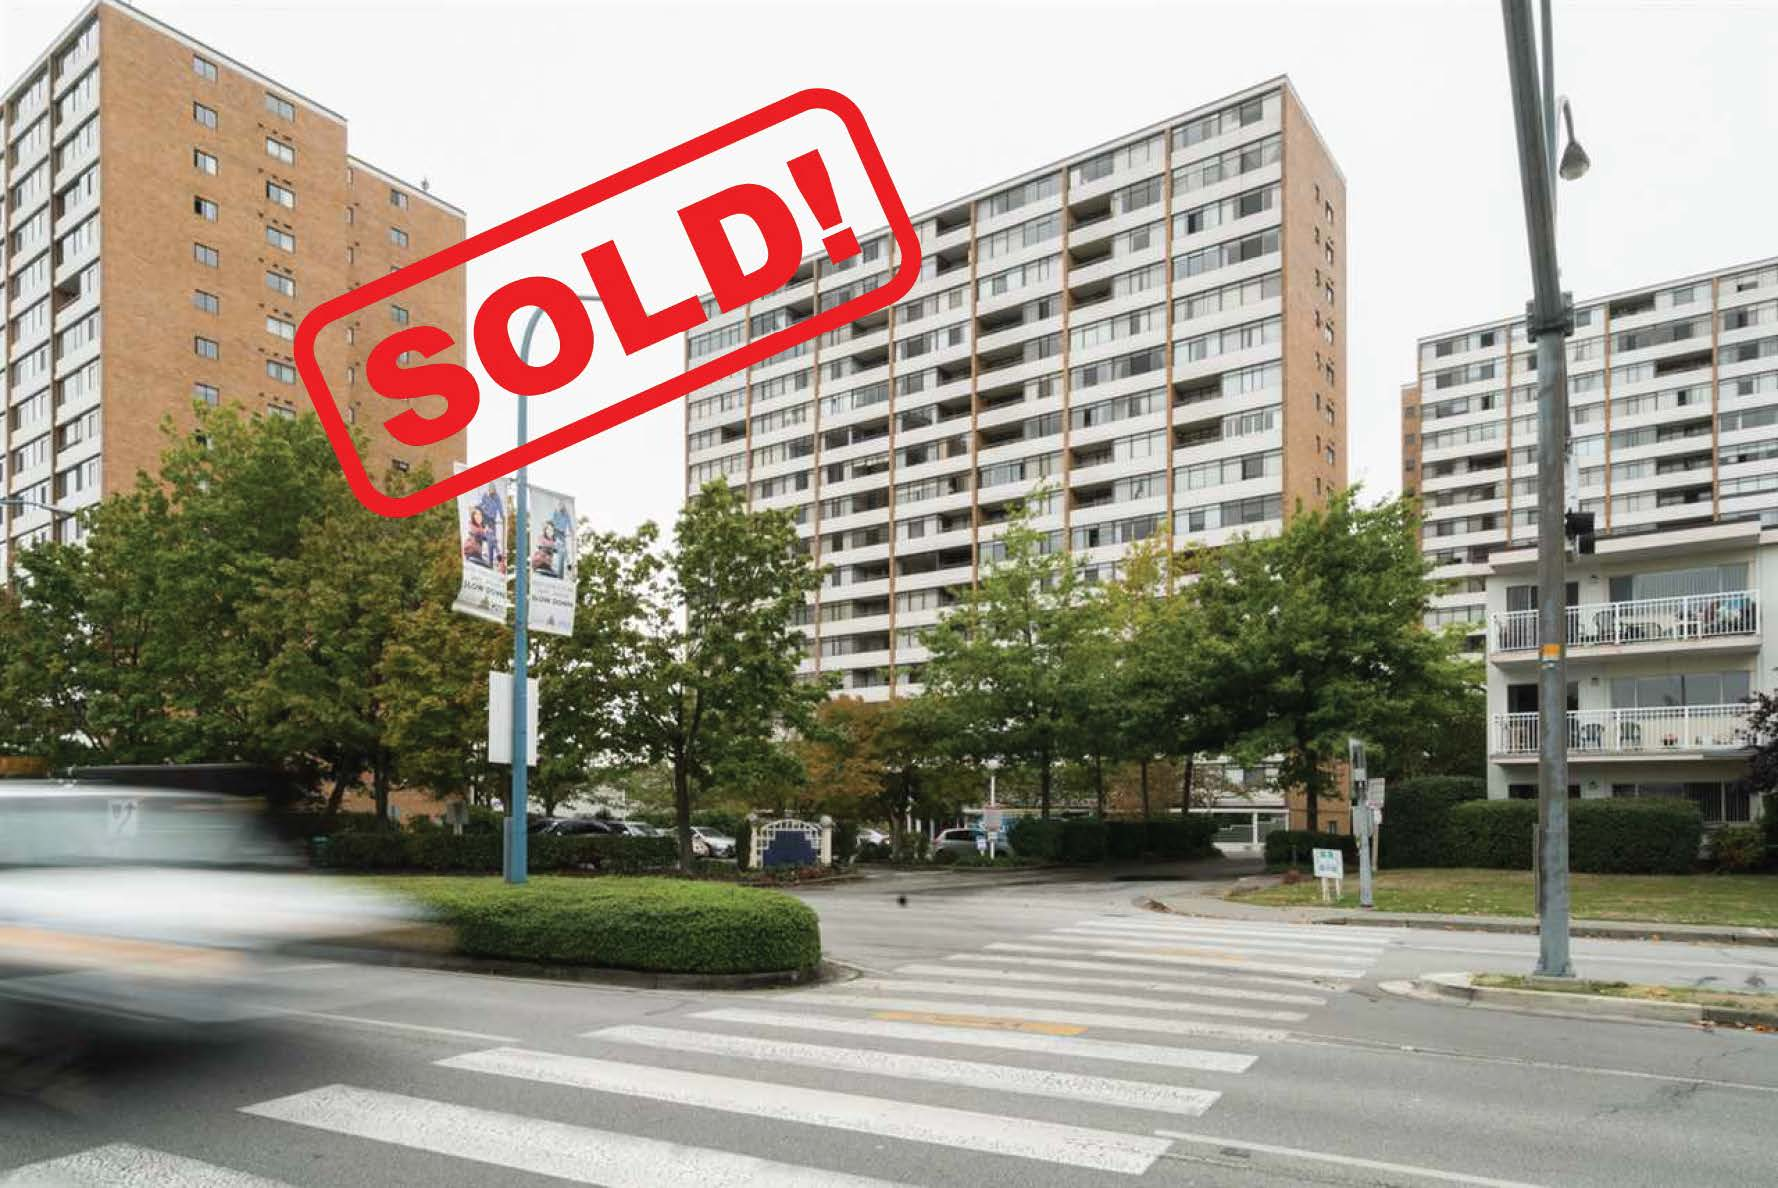 403-6631 MINORU BOULEVARD     SOLD FOR: $315,000  1 BED | 1 BATH | 650 SF